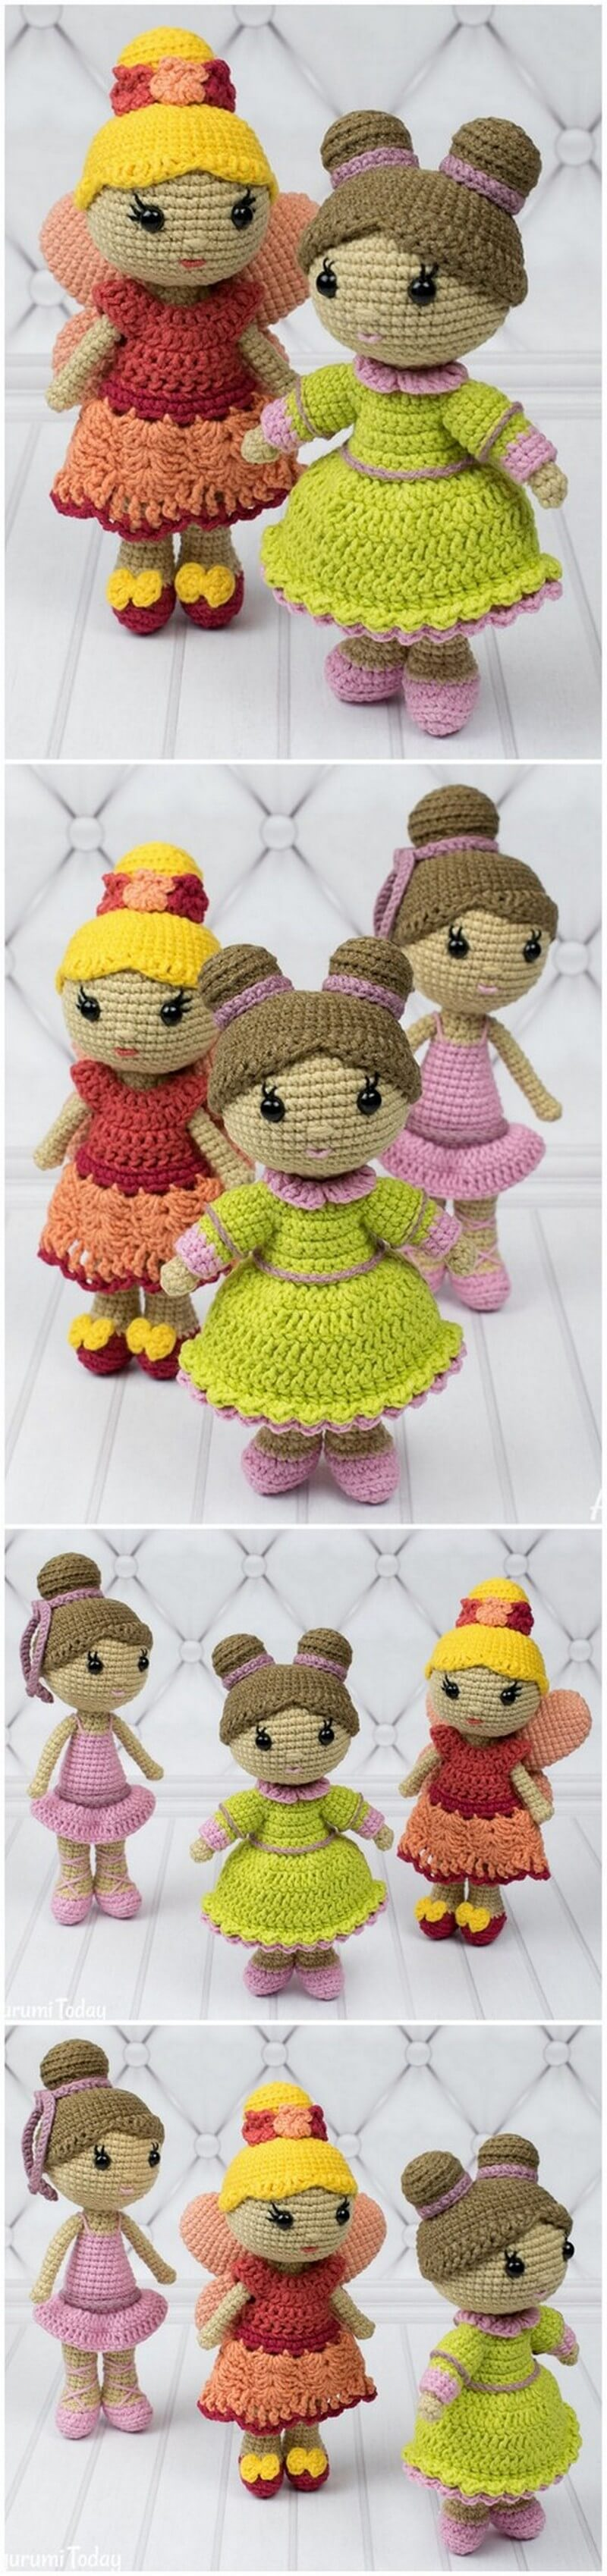 Crochet Amigurumi Doll Pattern (32)